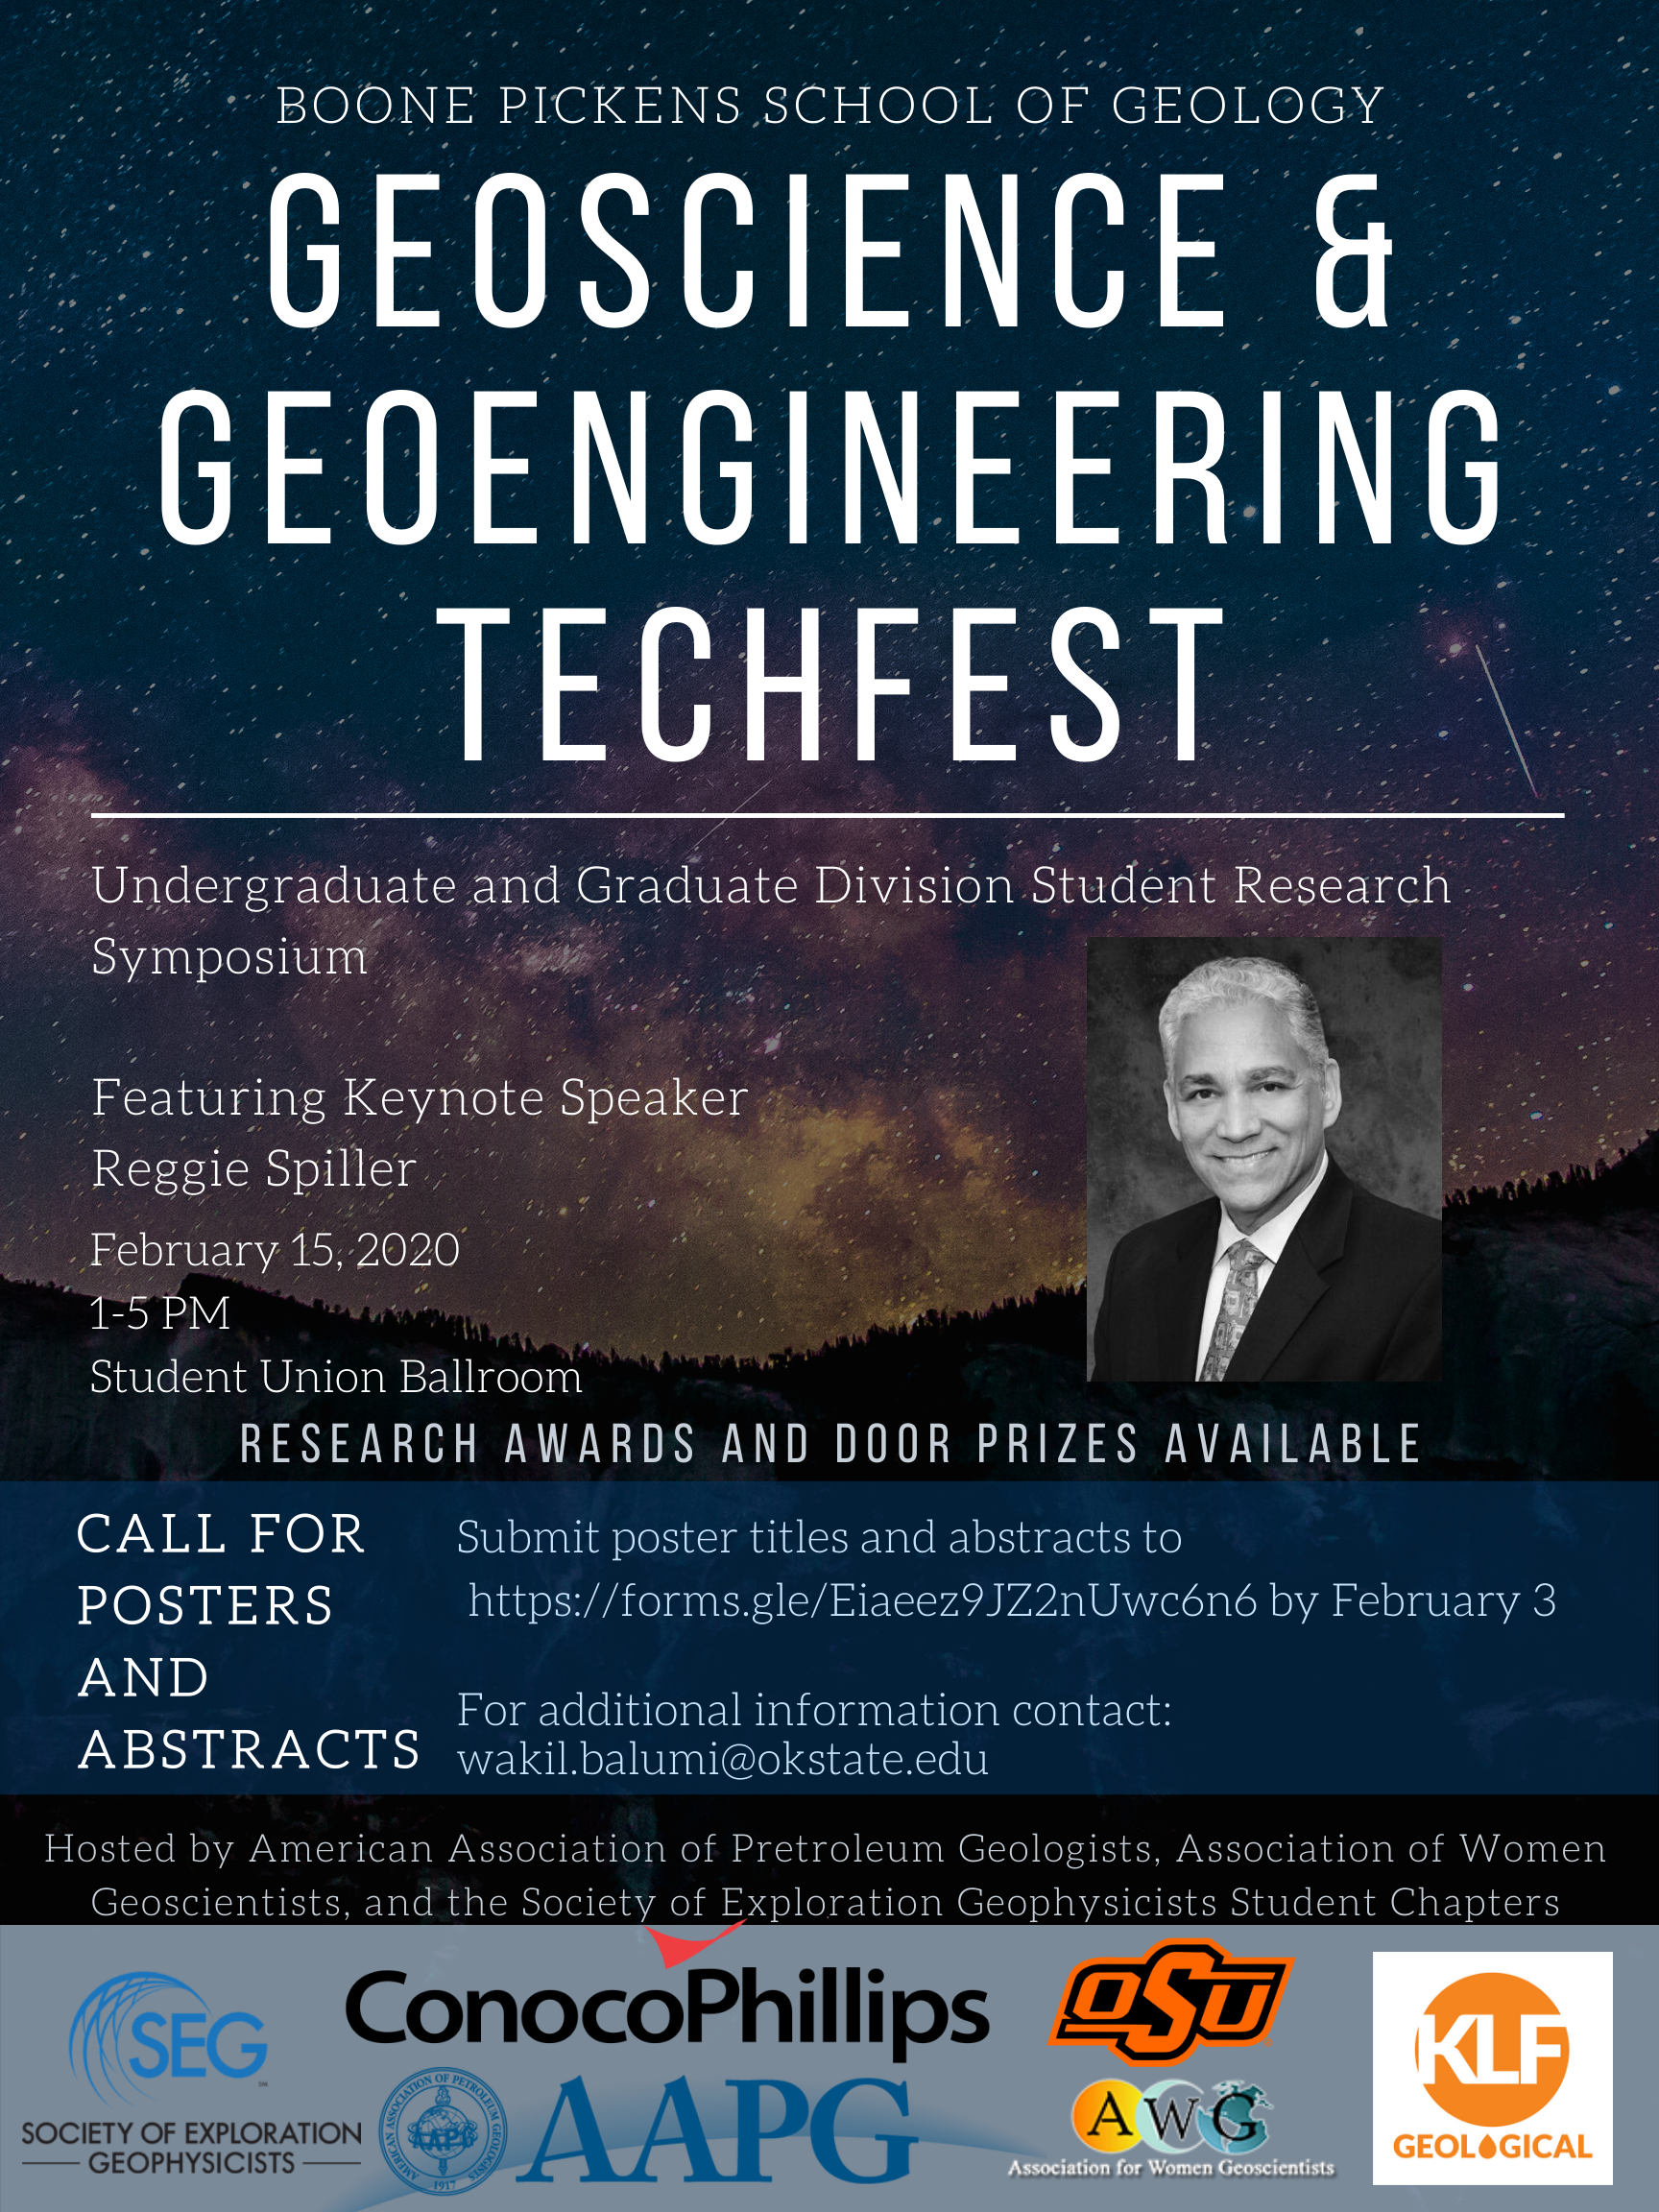 TechFest Poster